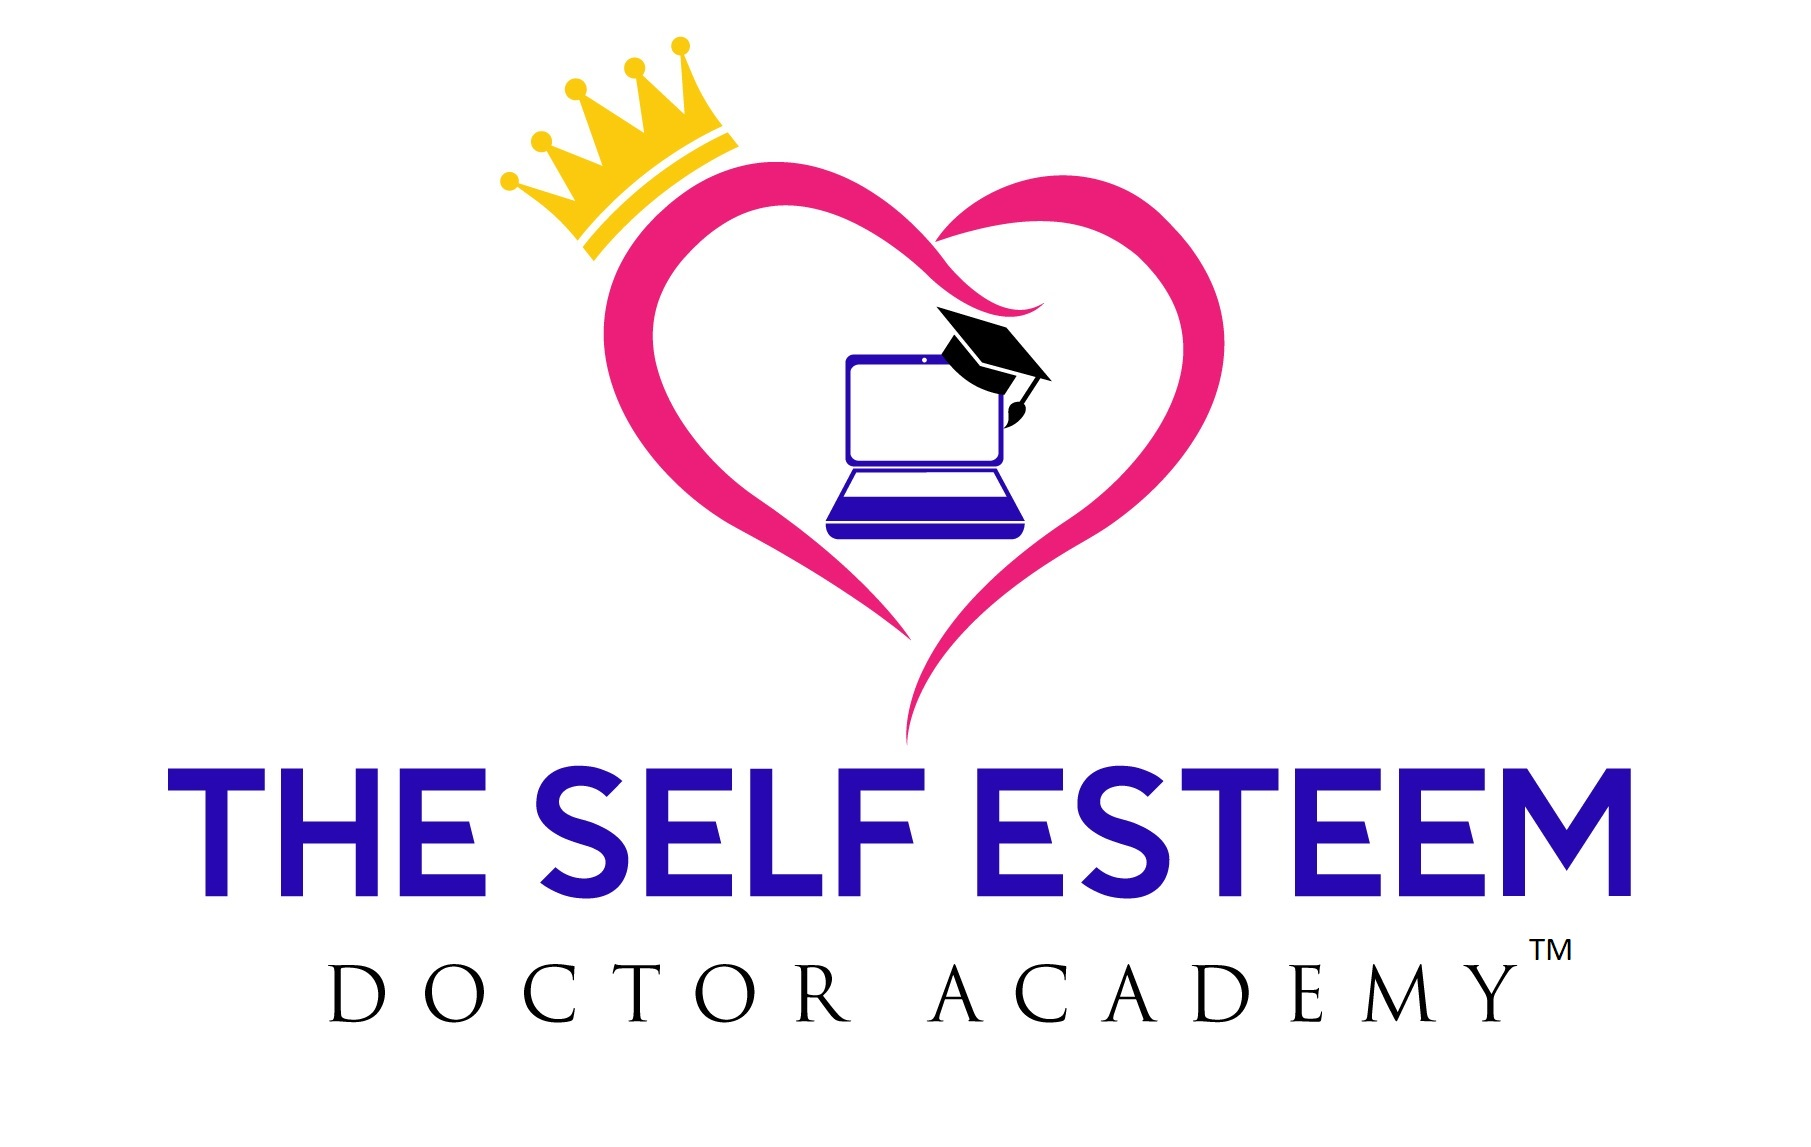 The Self Esteem Doctor Academy